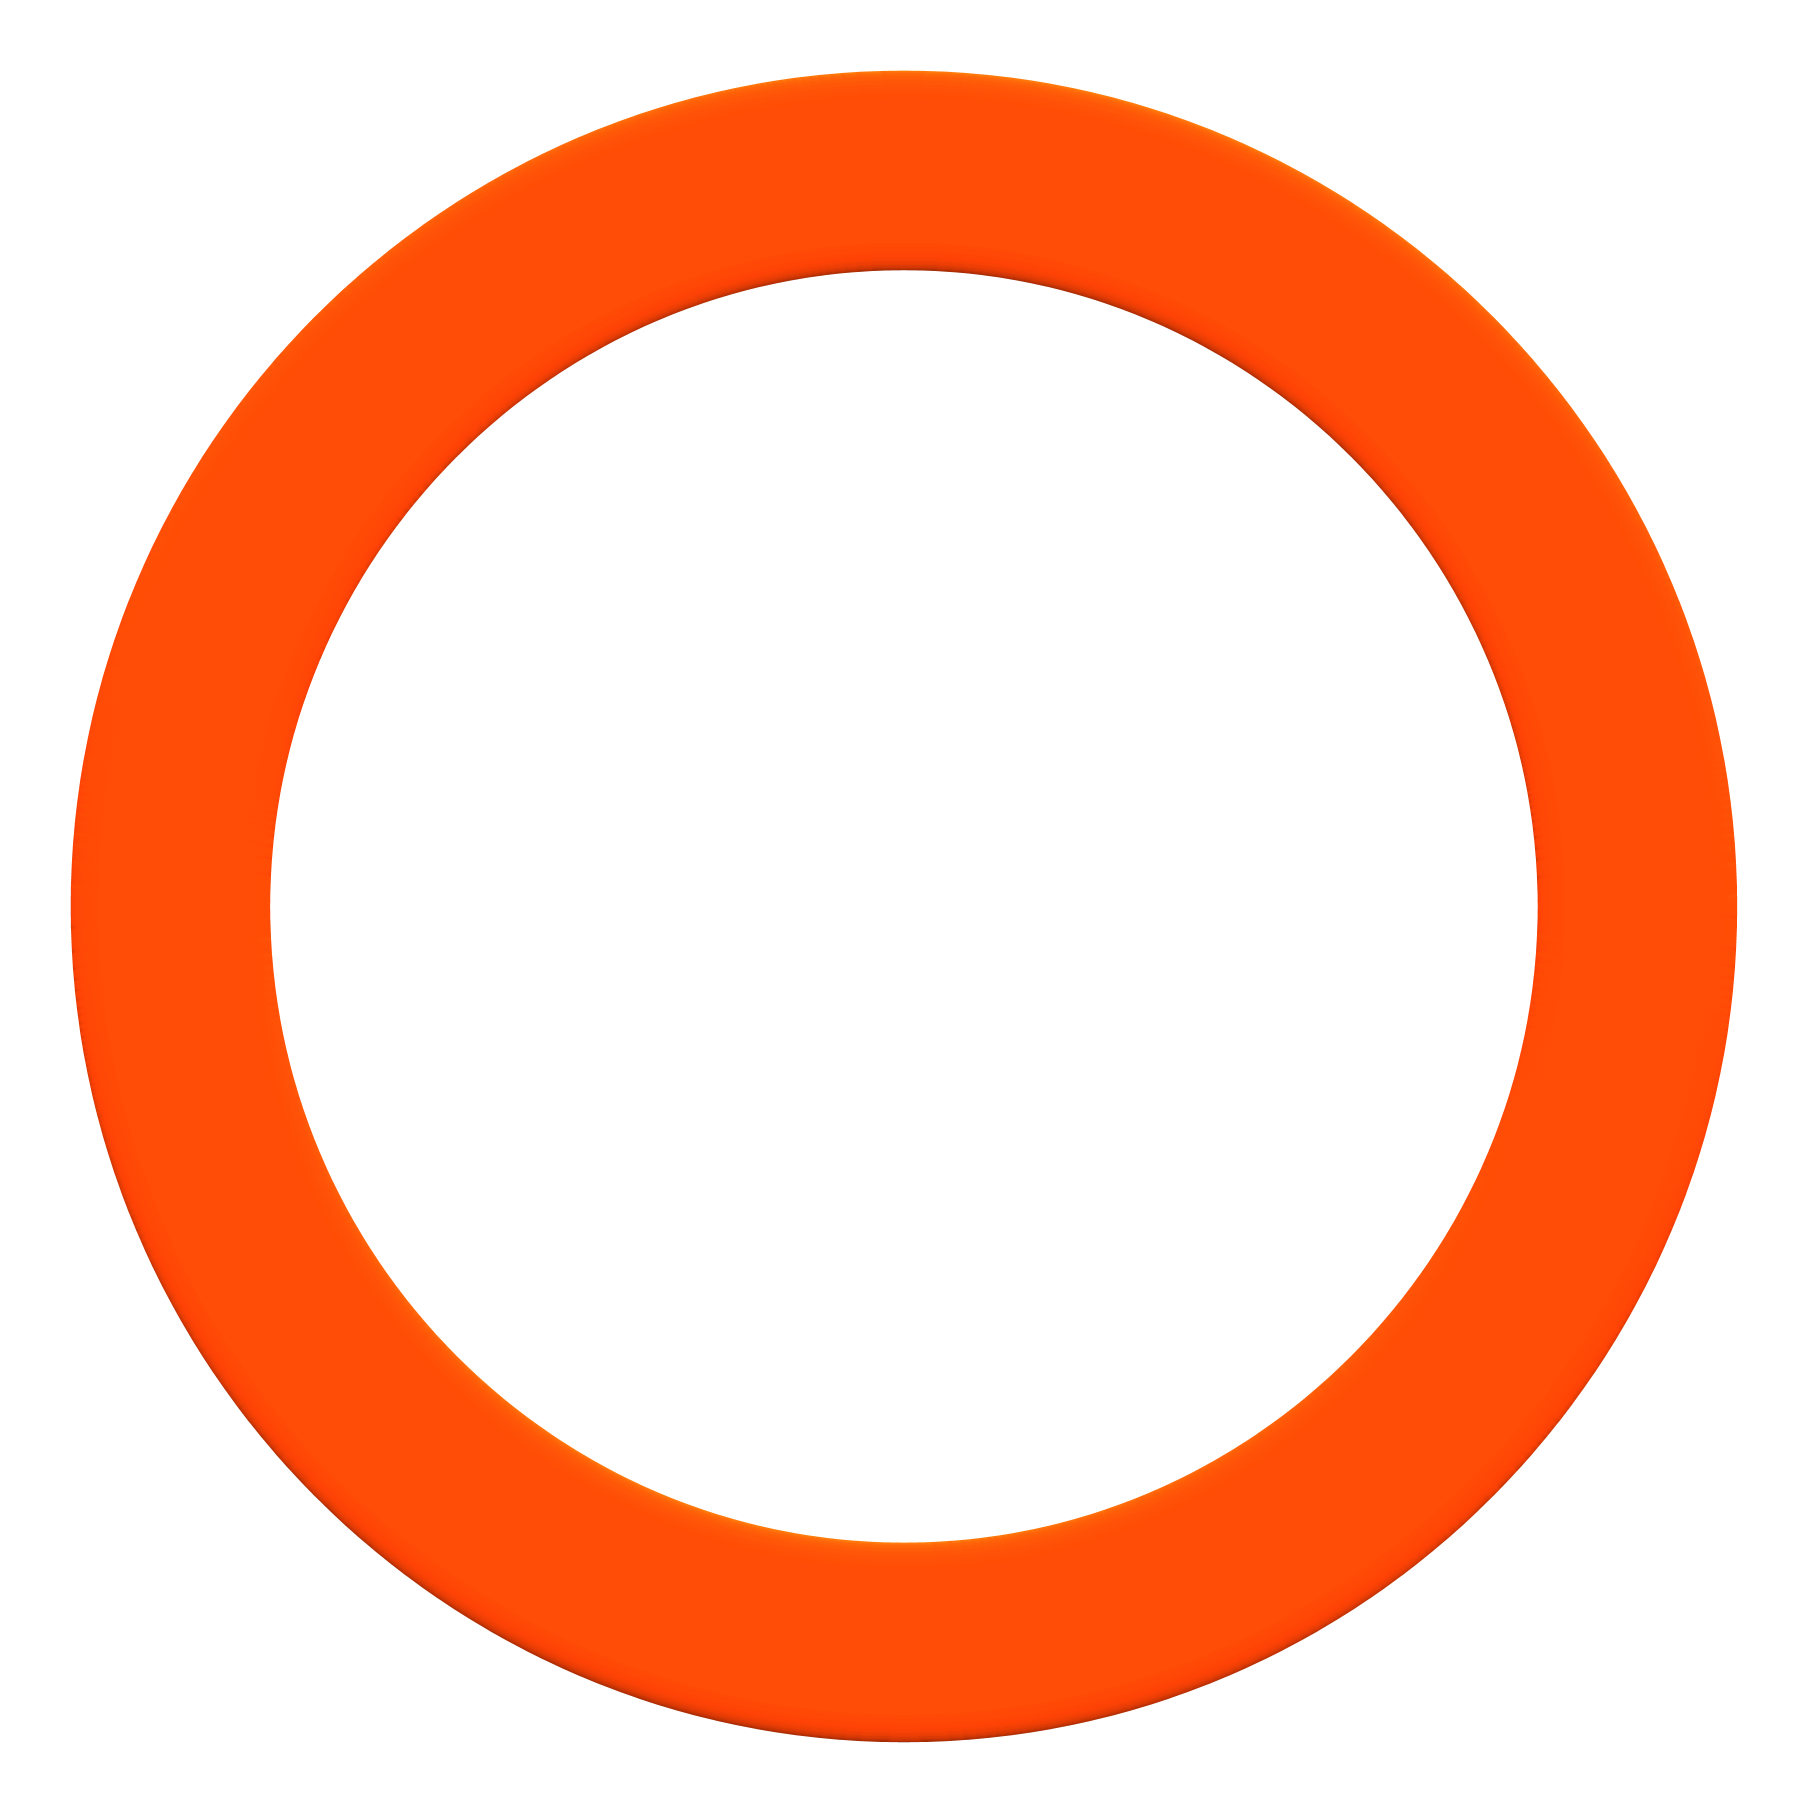 Download Circle PNG Image For Designing Projects.